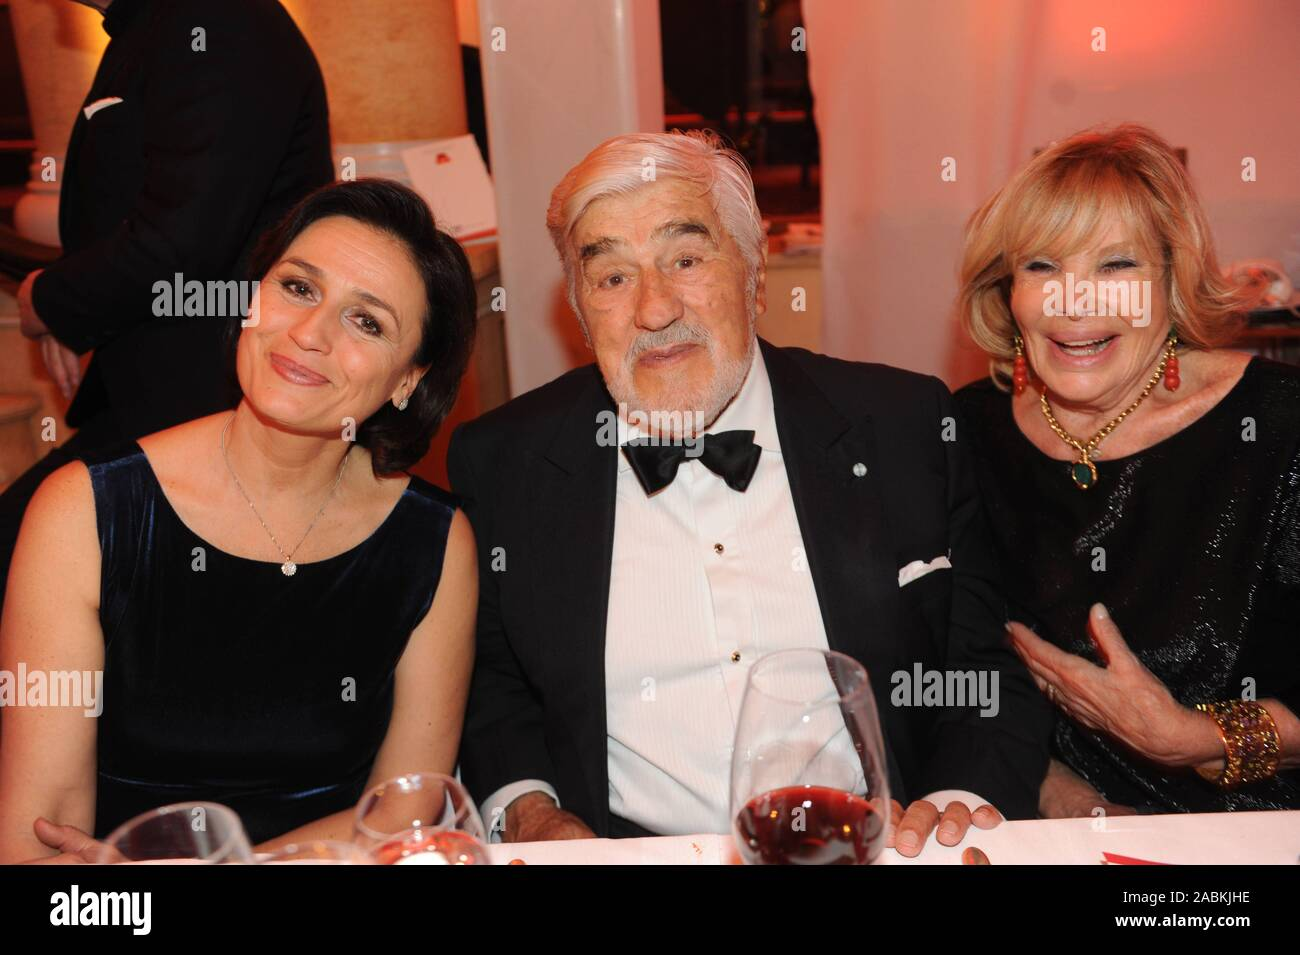 From left to right: Sandra Maischberger and Mario Adorf with Eherau Monique at the 46th German Film Ball at the Hotel Bayerischer Hof in Munich. [automated translation] Stock Photo